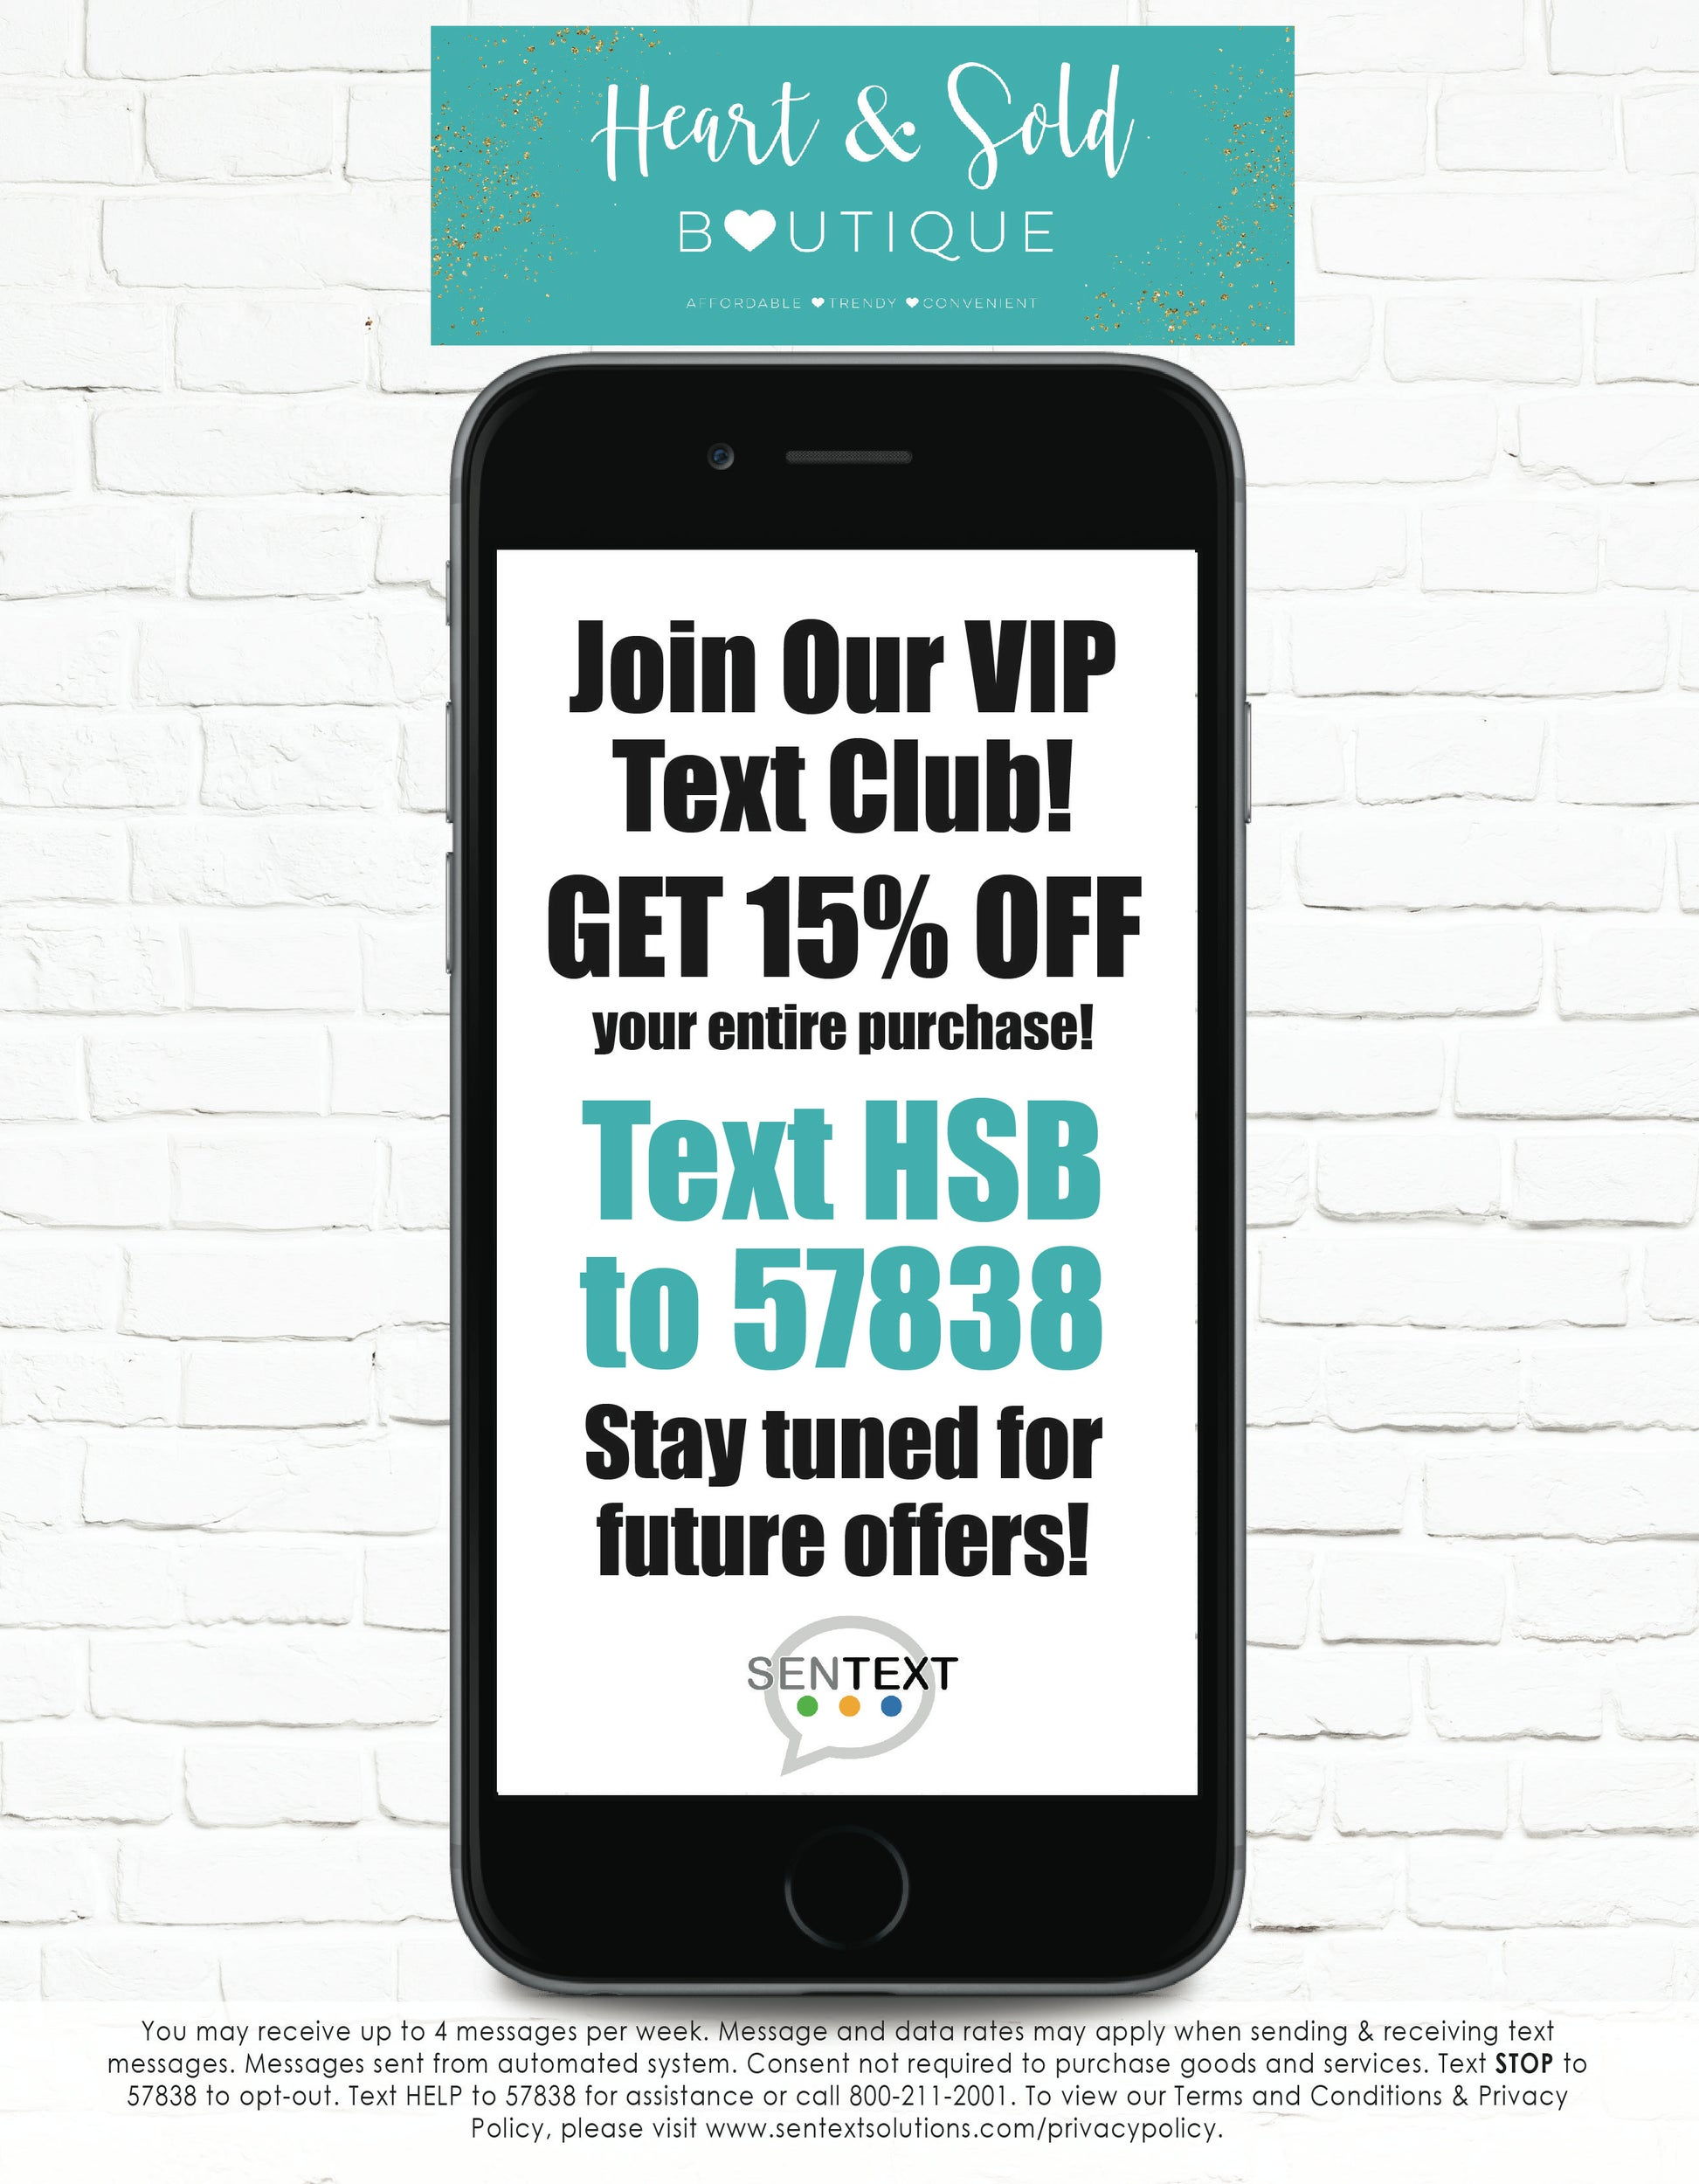 Text HSB to 57838 to get 15% OFF!